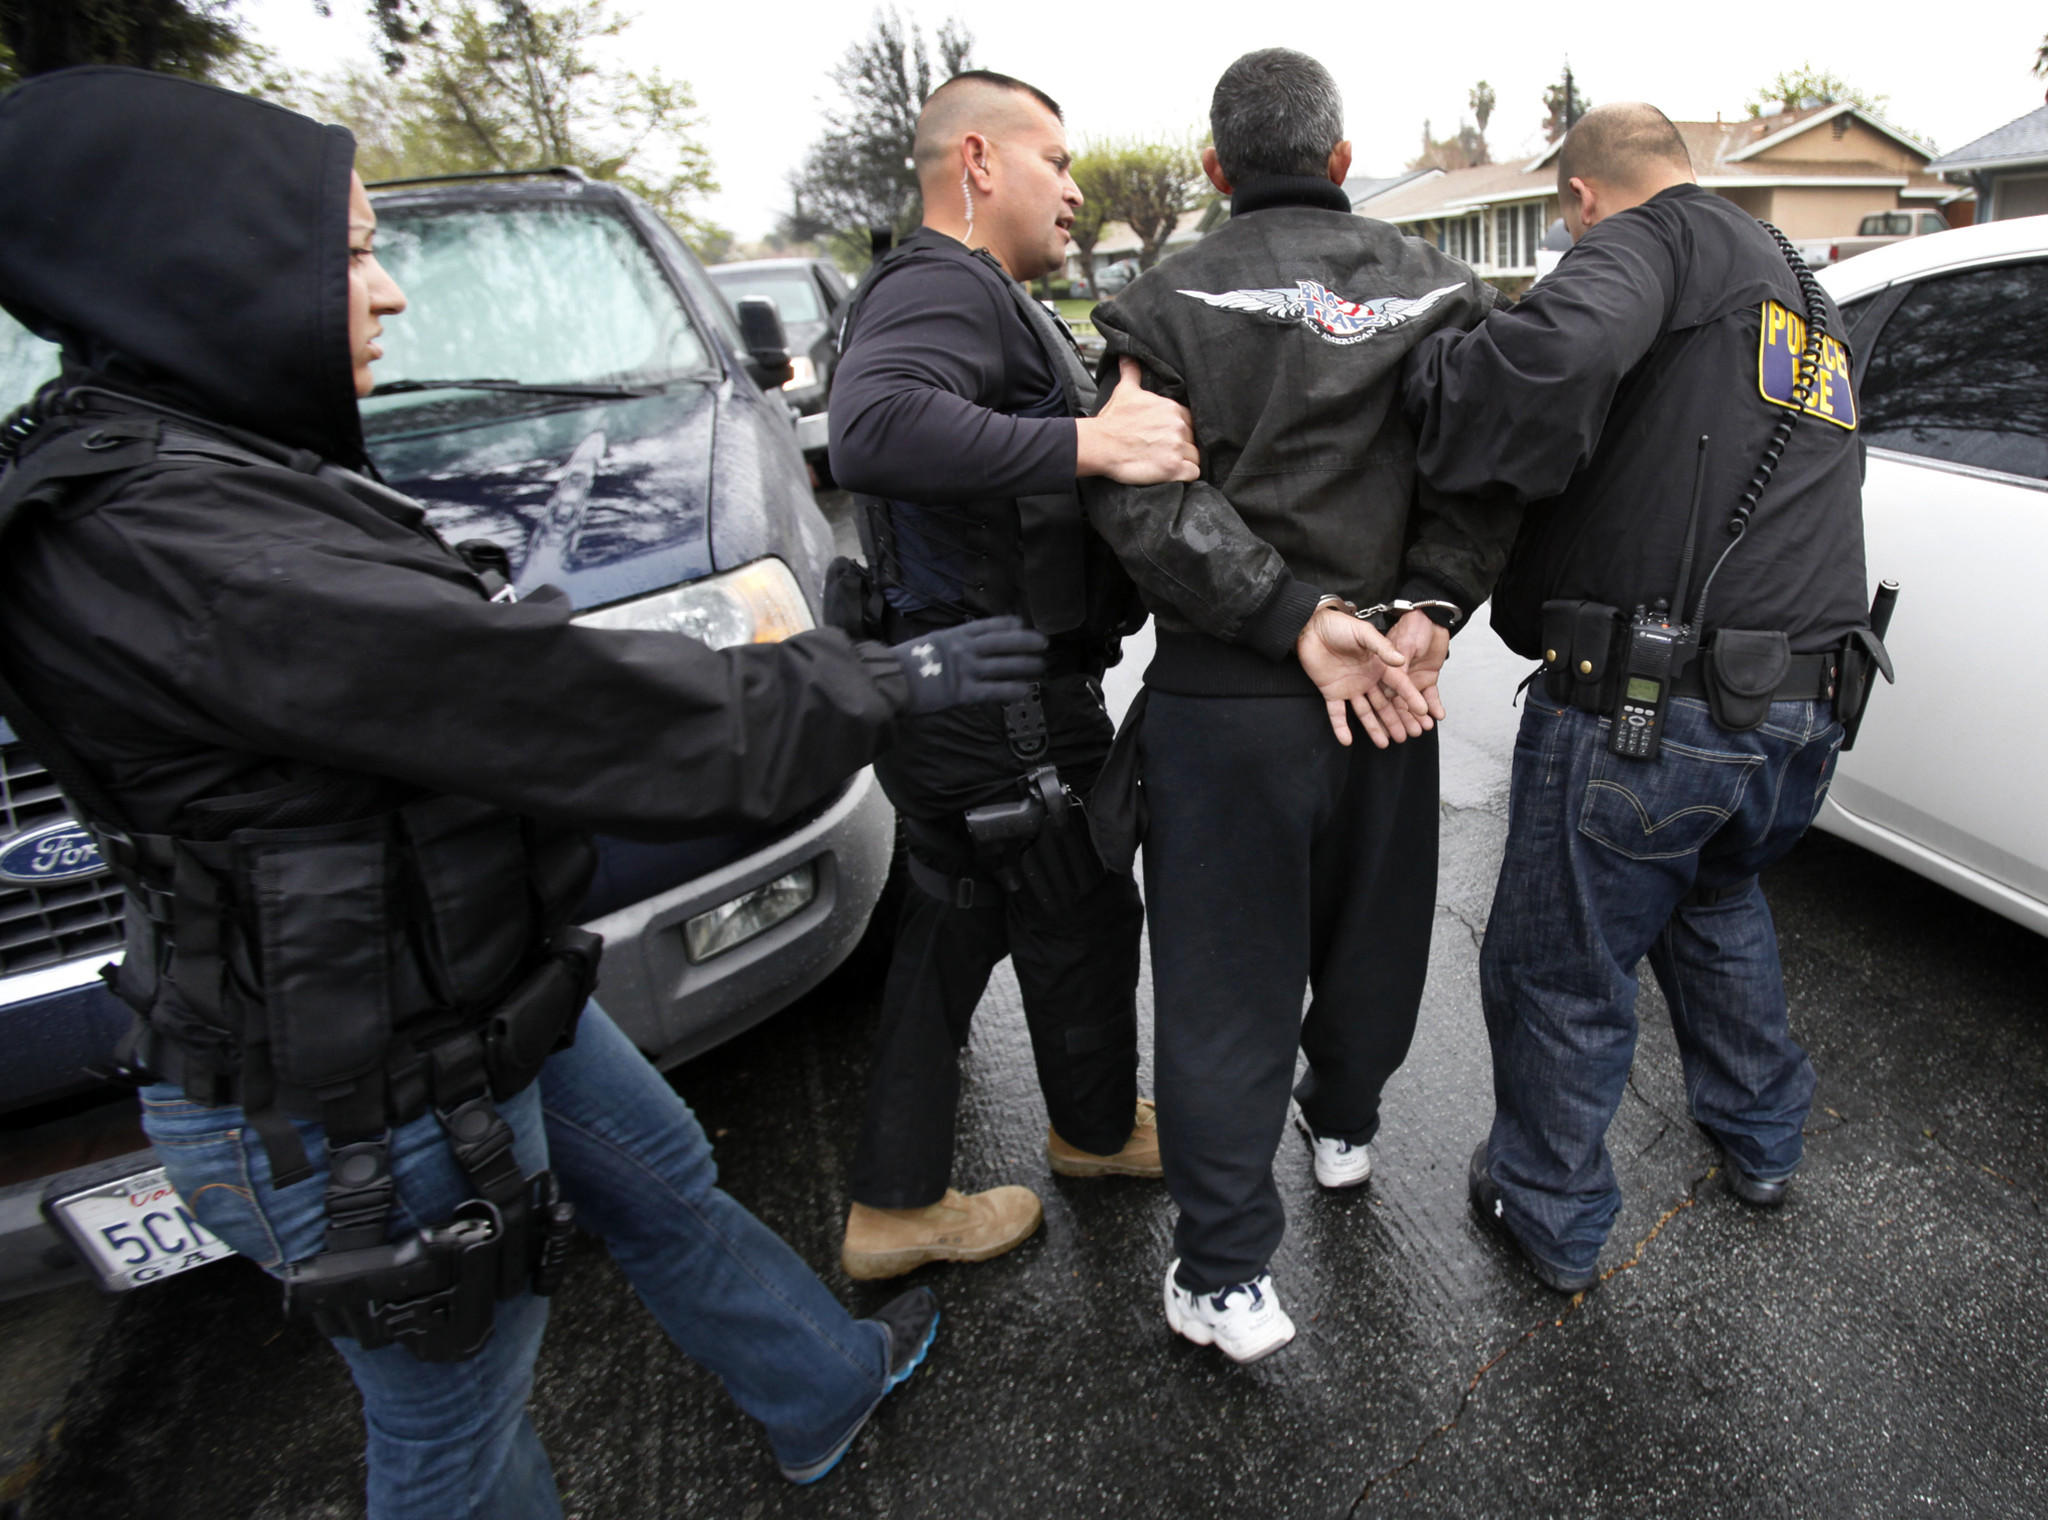 A man was arrested in 2012 by immigration agents in Chatsworth as part of a nationwide roundup of criminal immigrants.